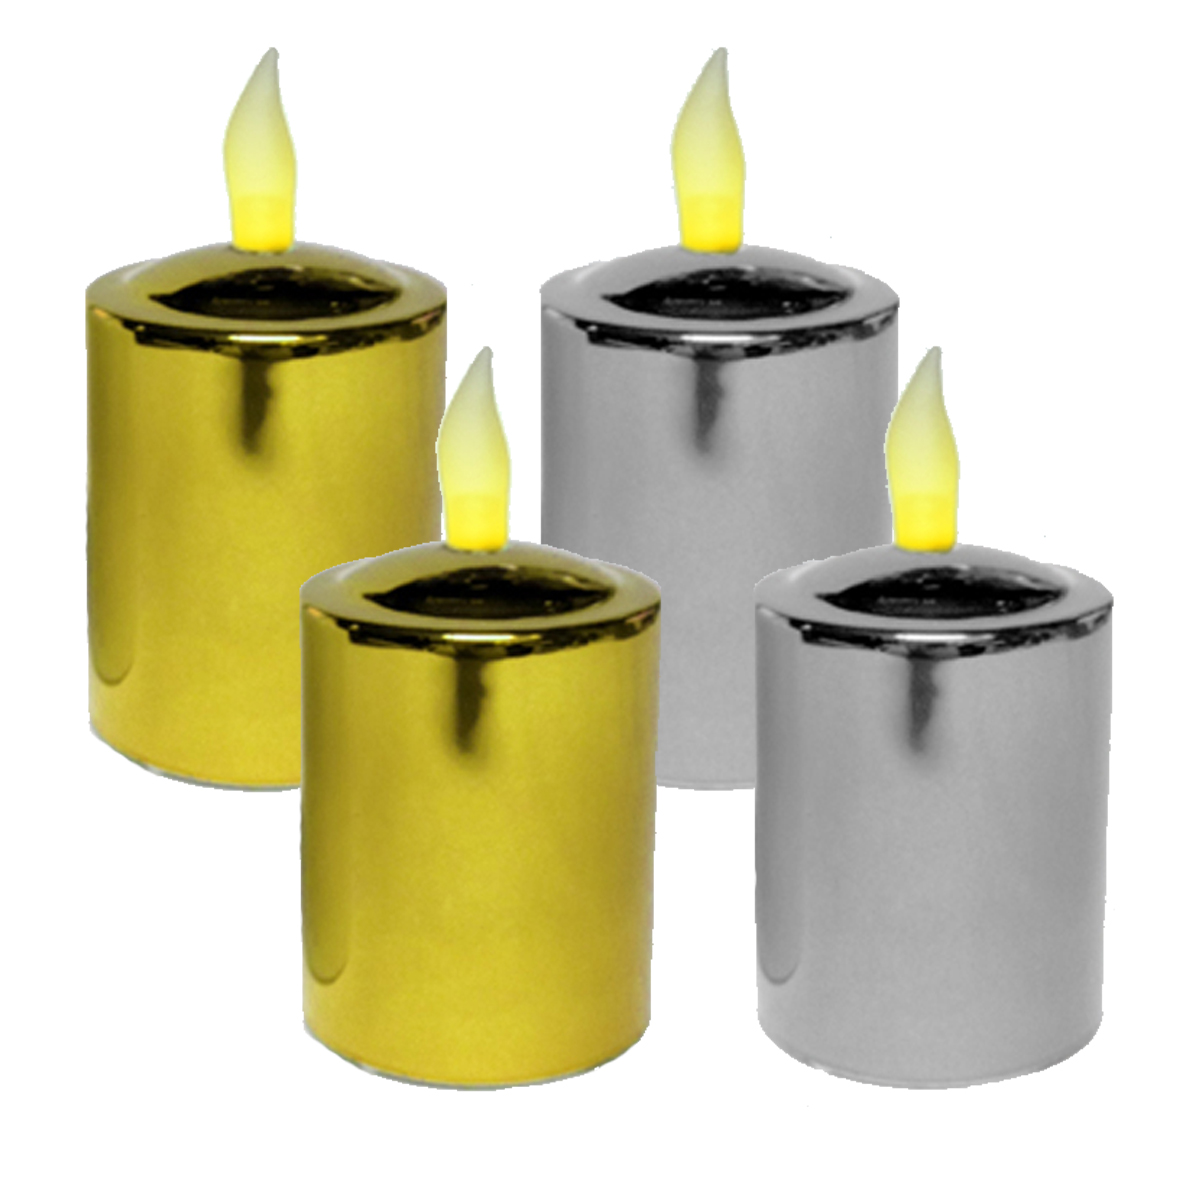 Mr. Light Set of 4 Flickering Amber LED Votive Candles, Metallic Silver (2) and Gold (2) Finish